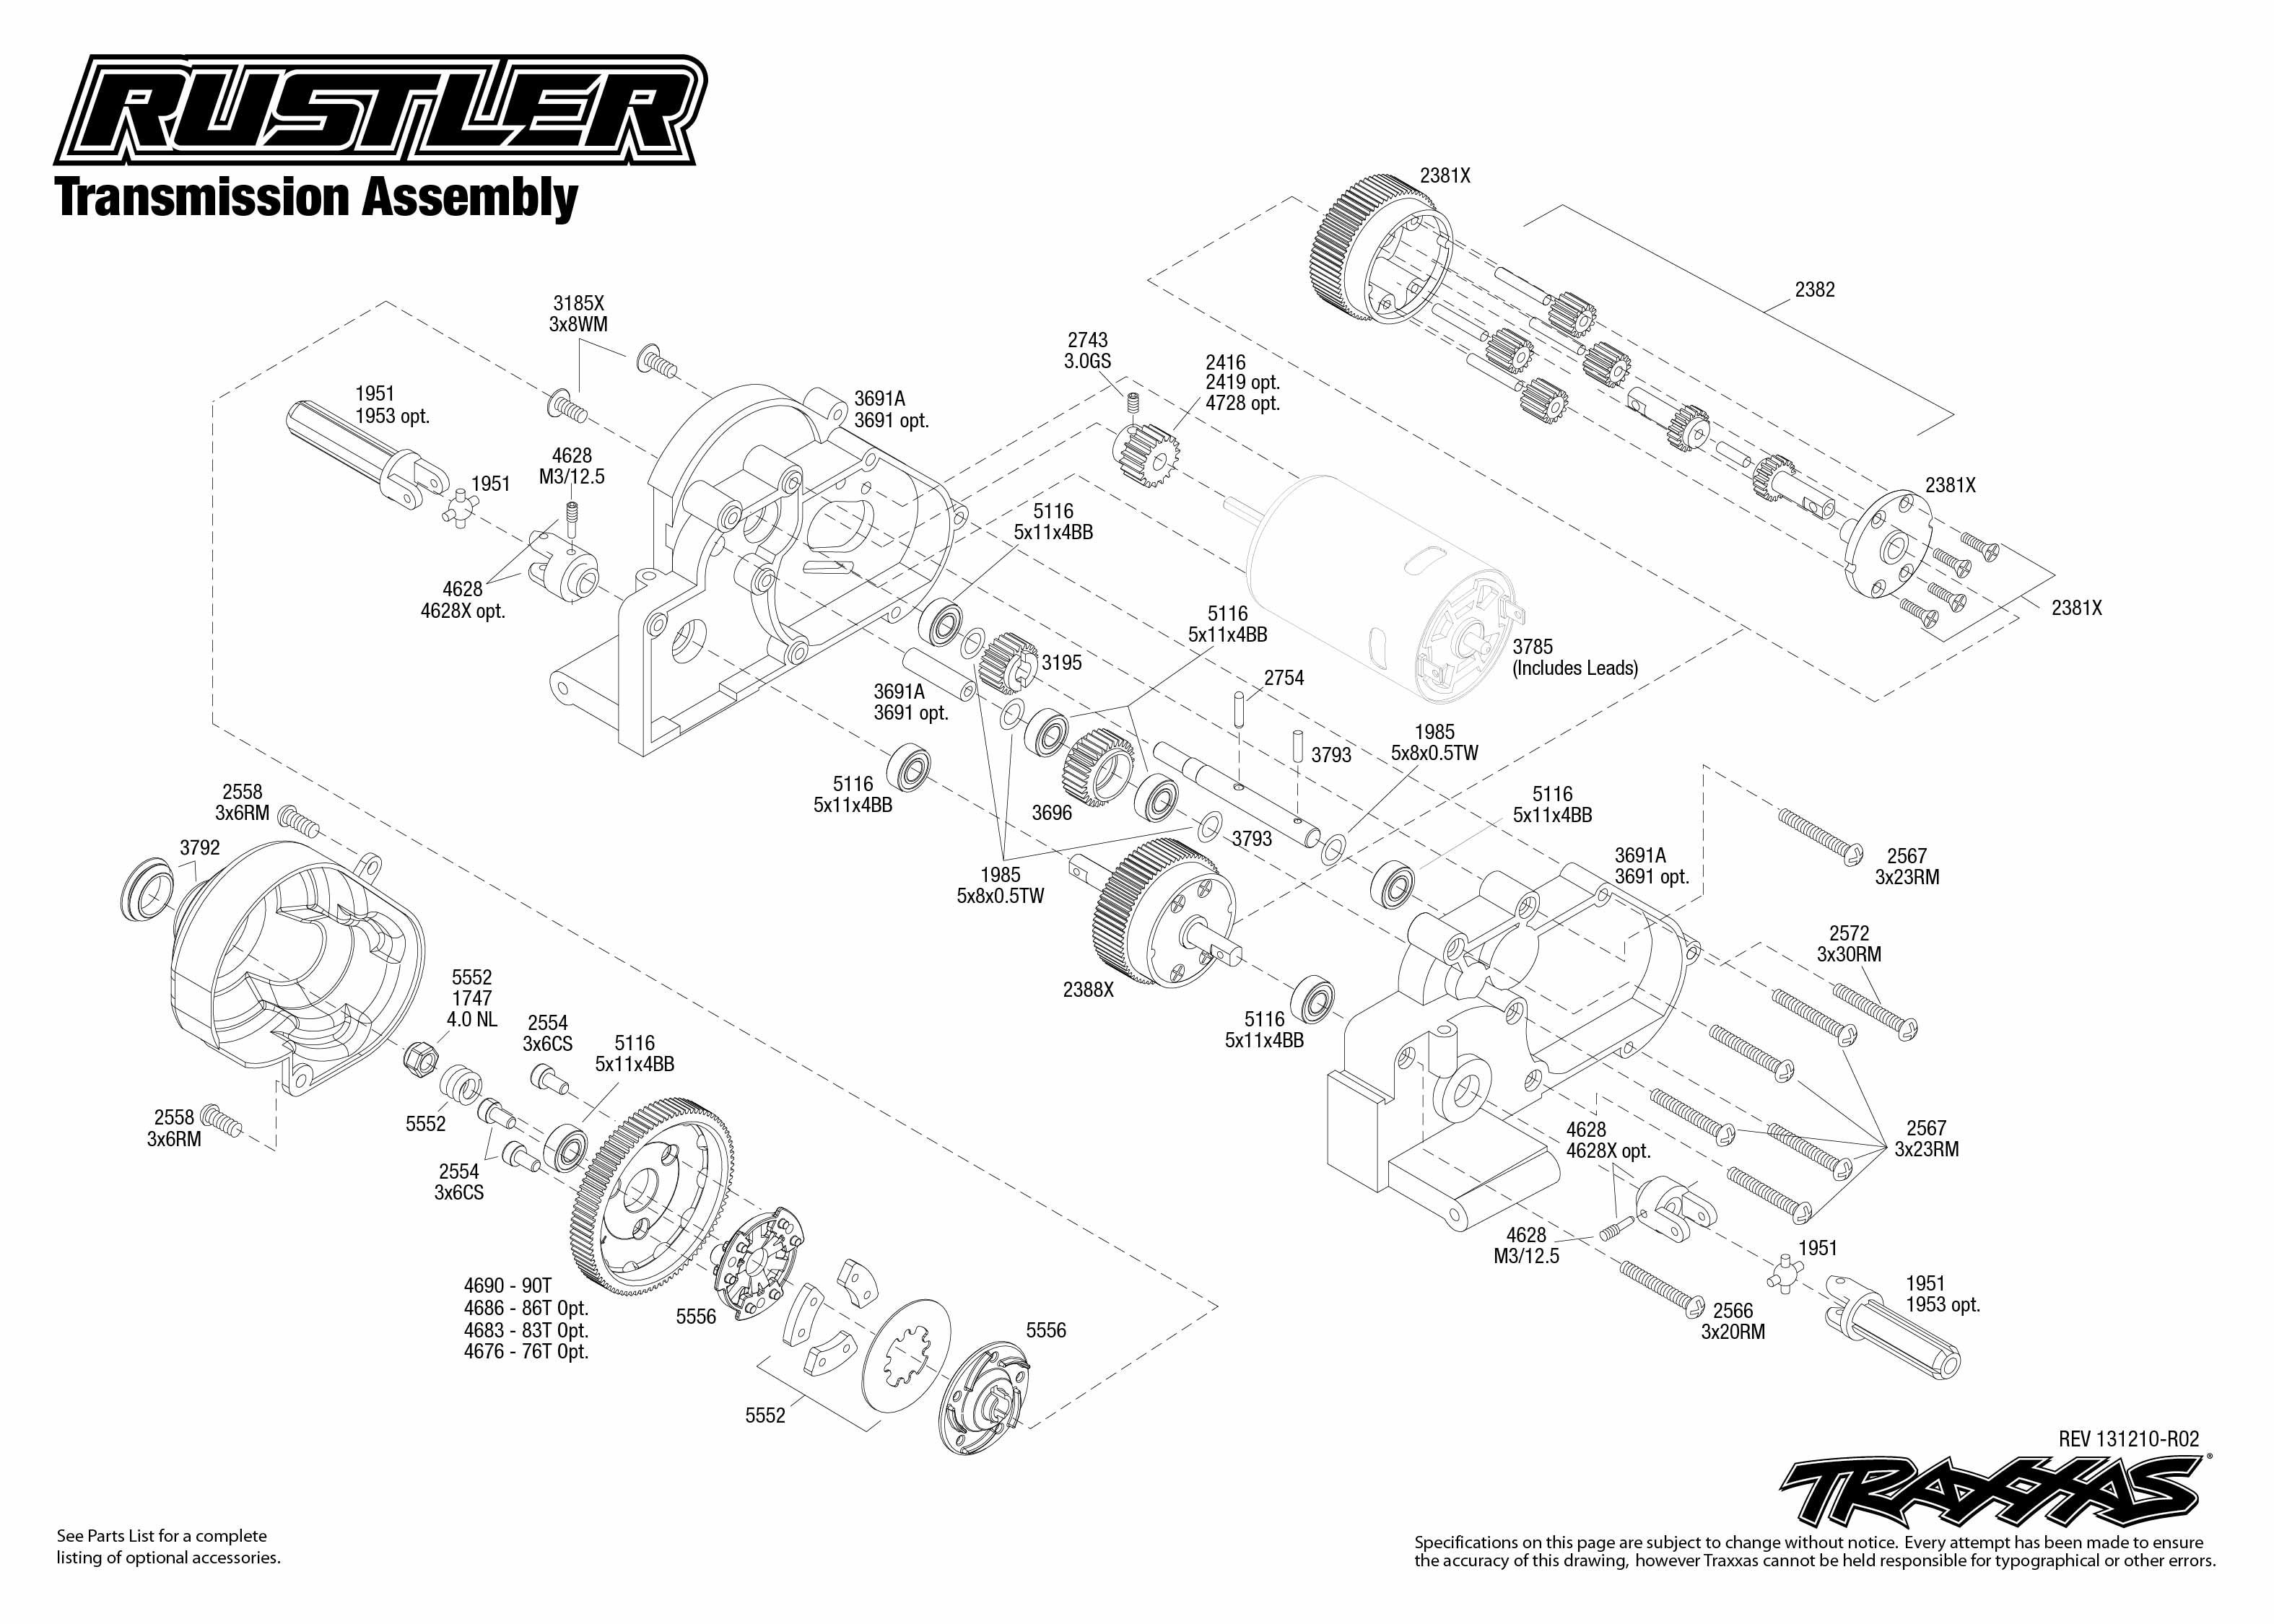 image result for traxxas rustler parts diagram rc cars traxxas rustler diagram [ 3150 x 2250 Pixel ]